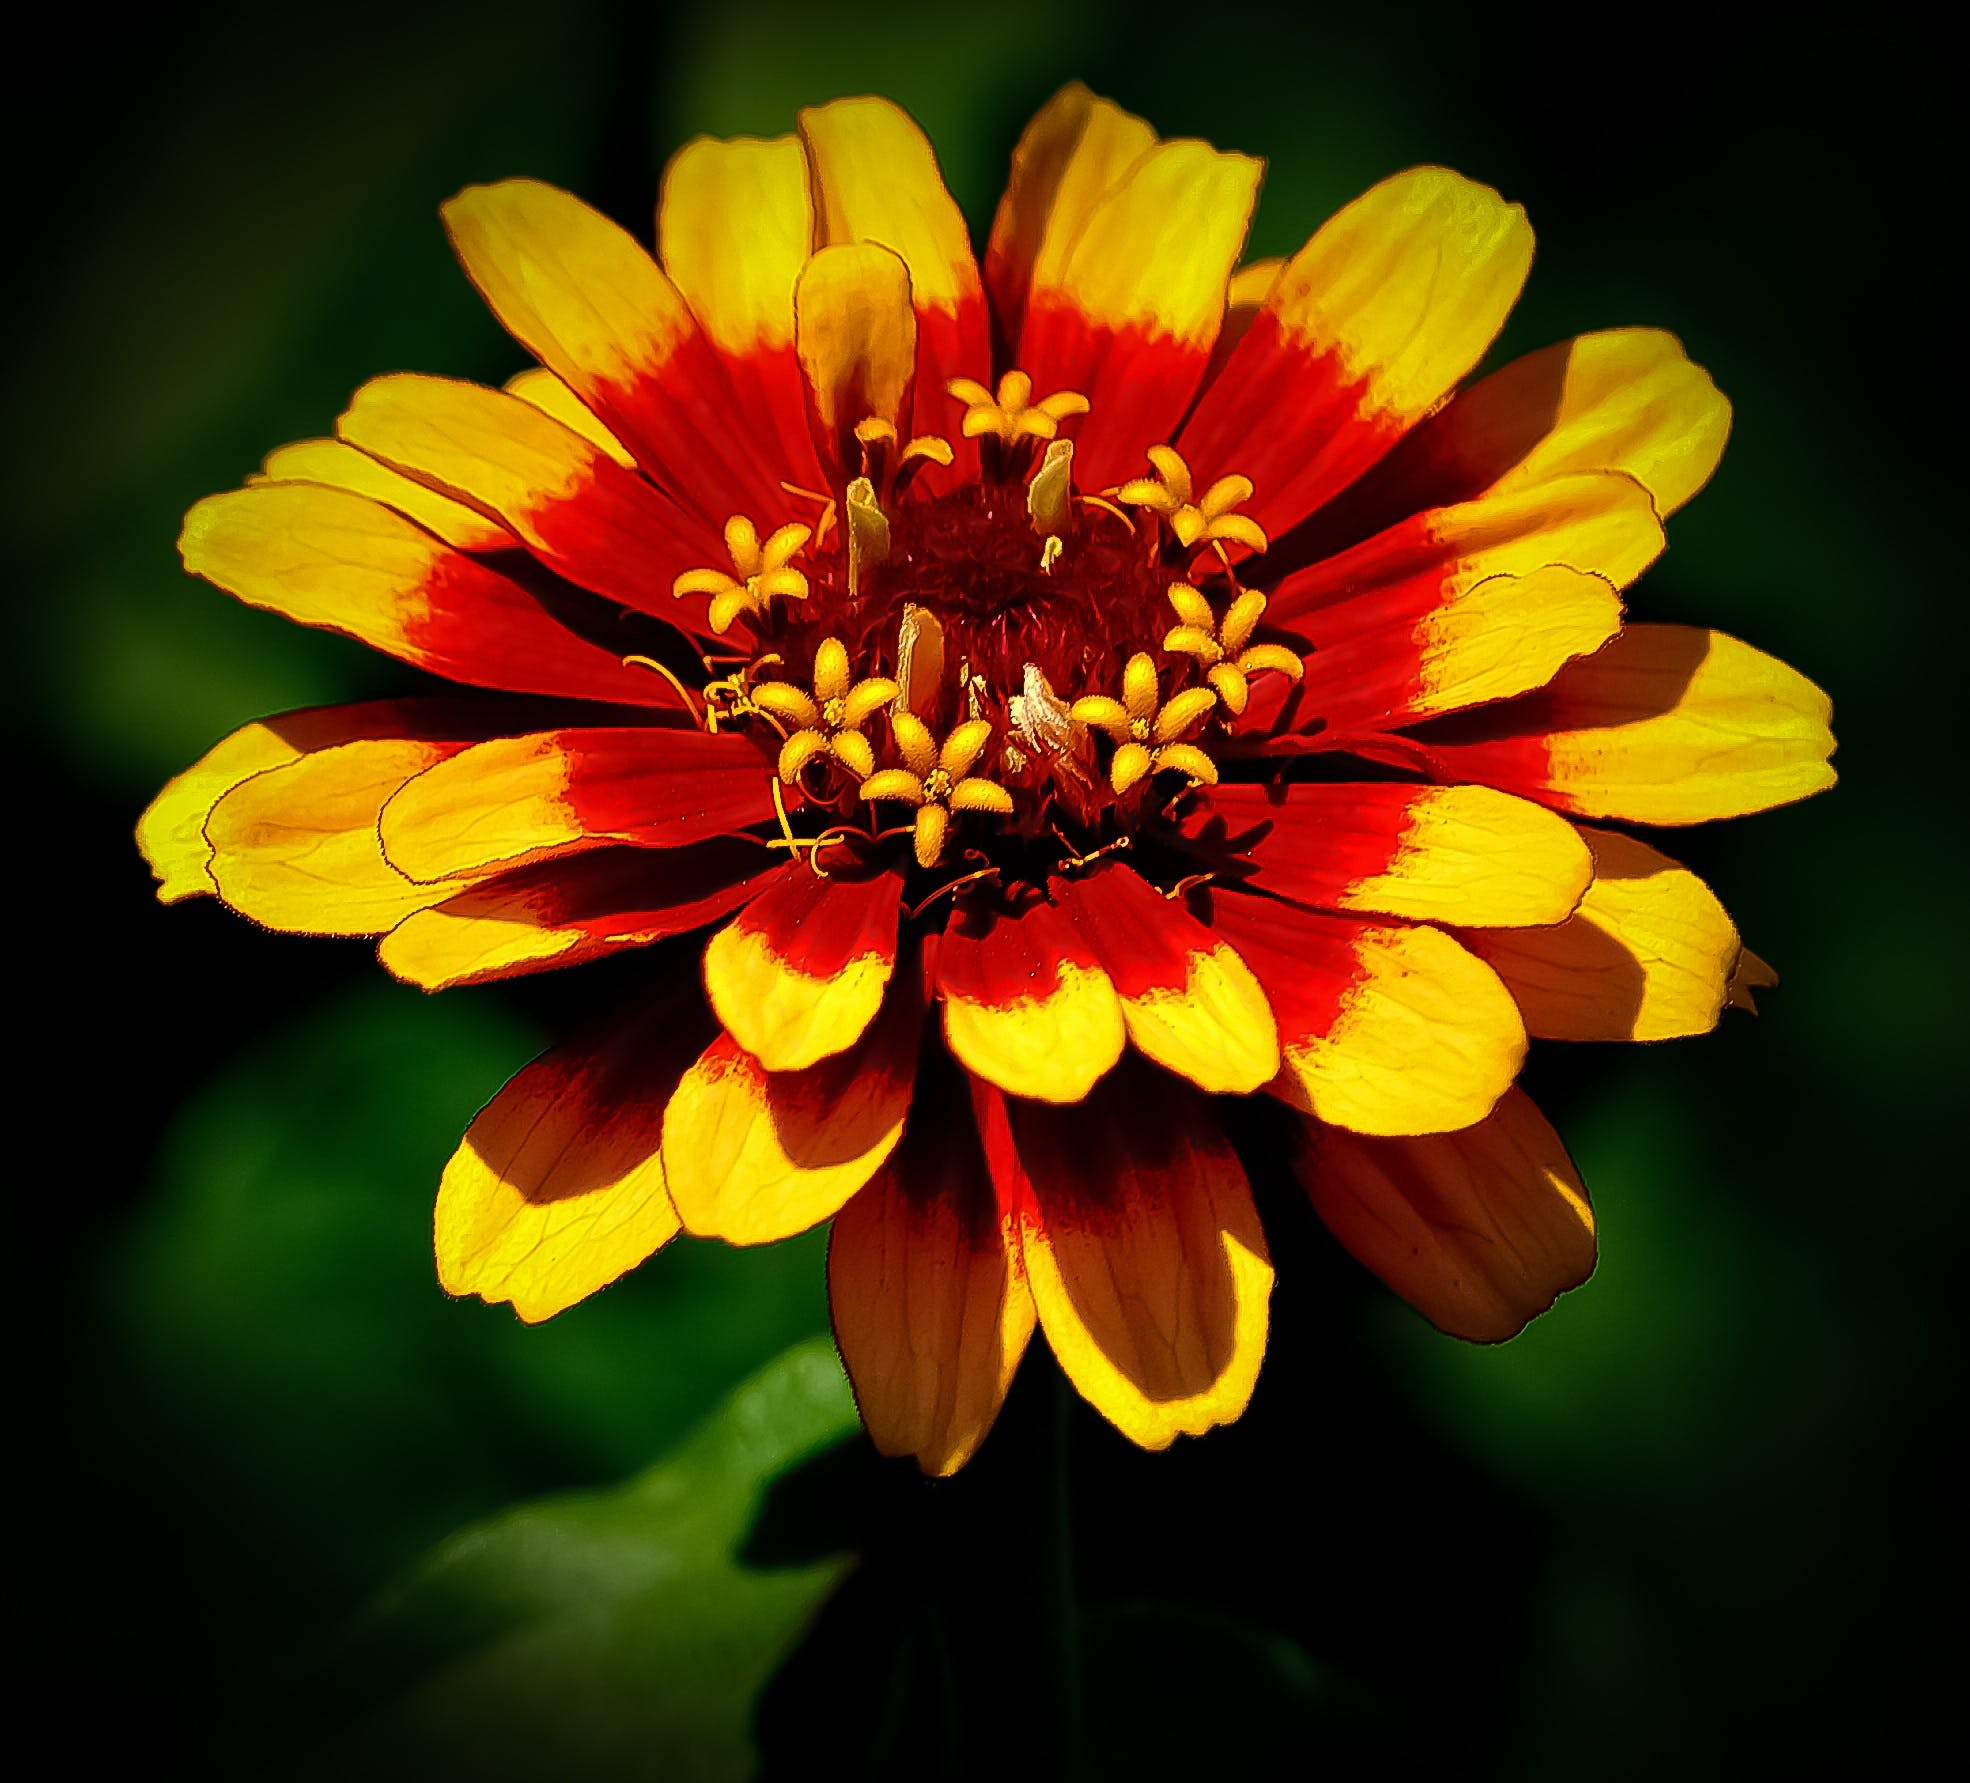 Yellow and Red Zinnia Flower Selective Focus Photography